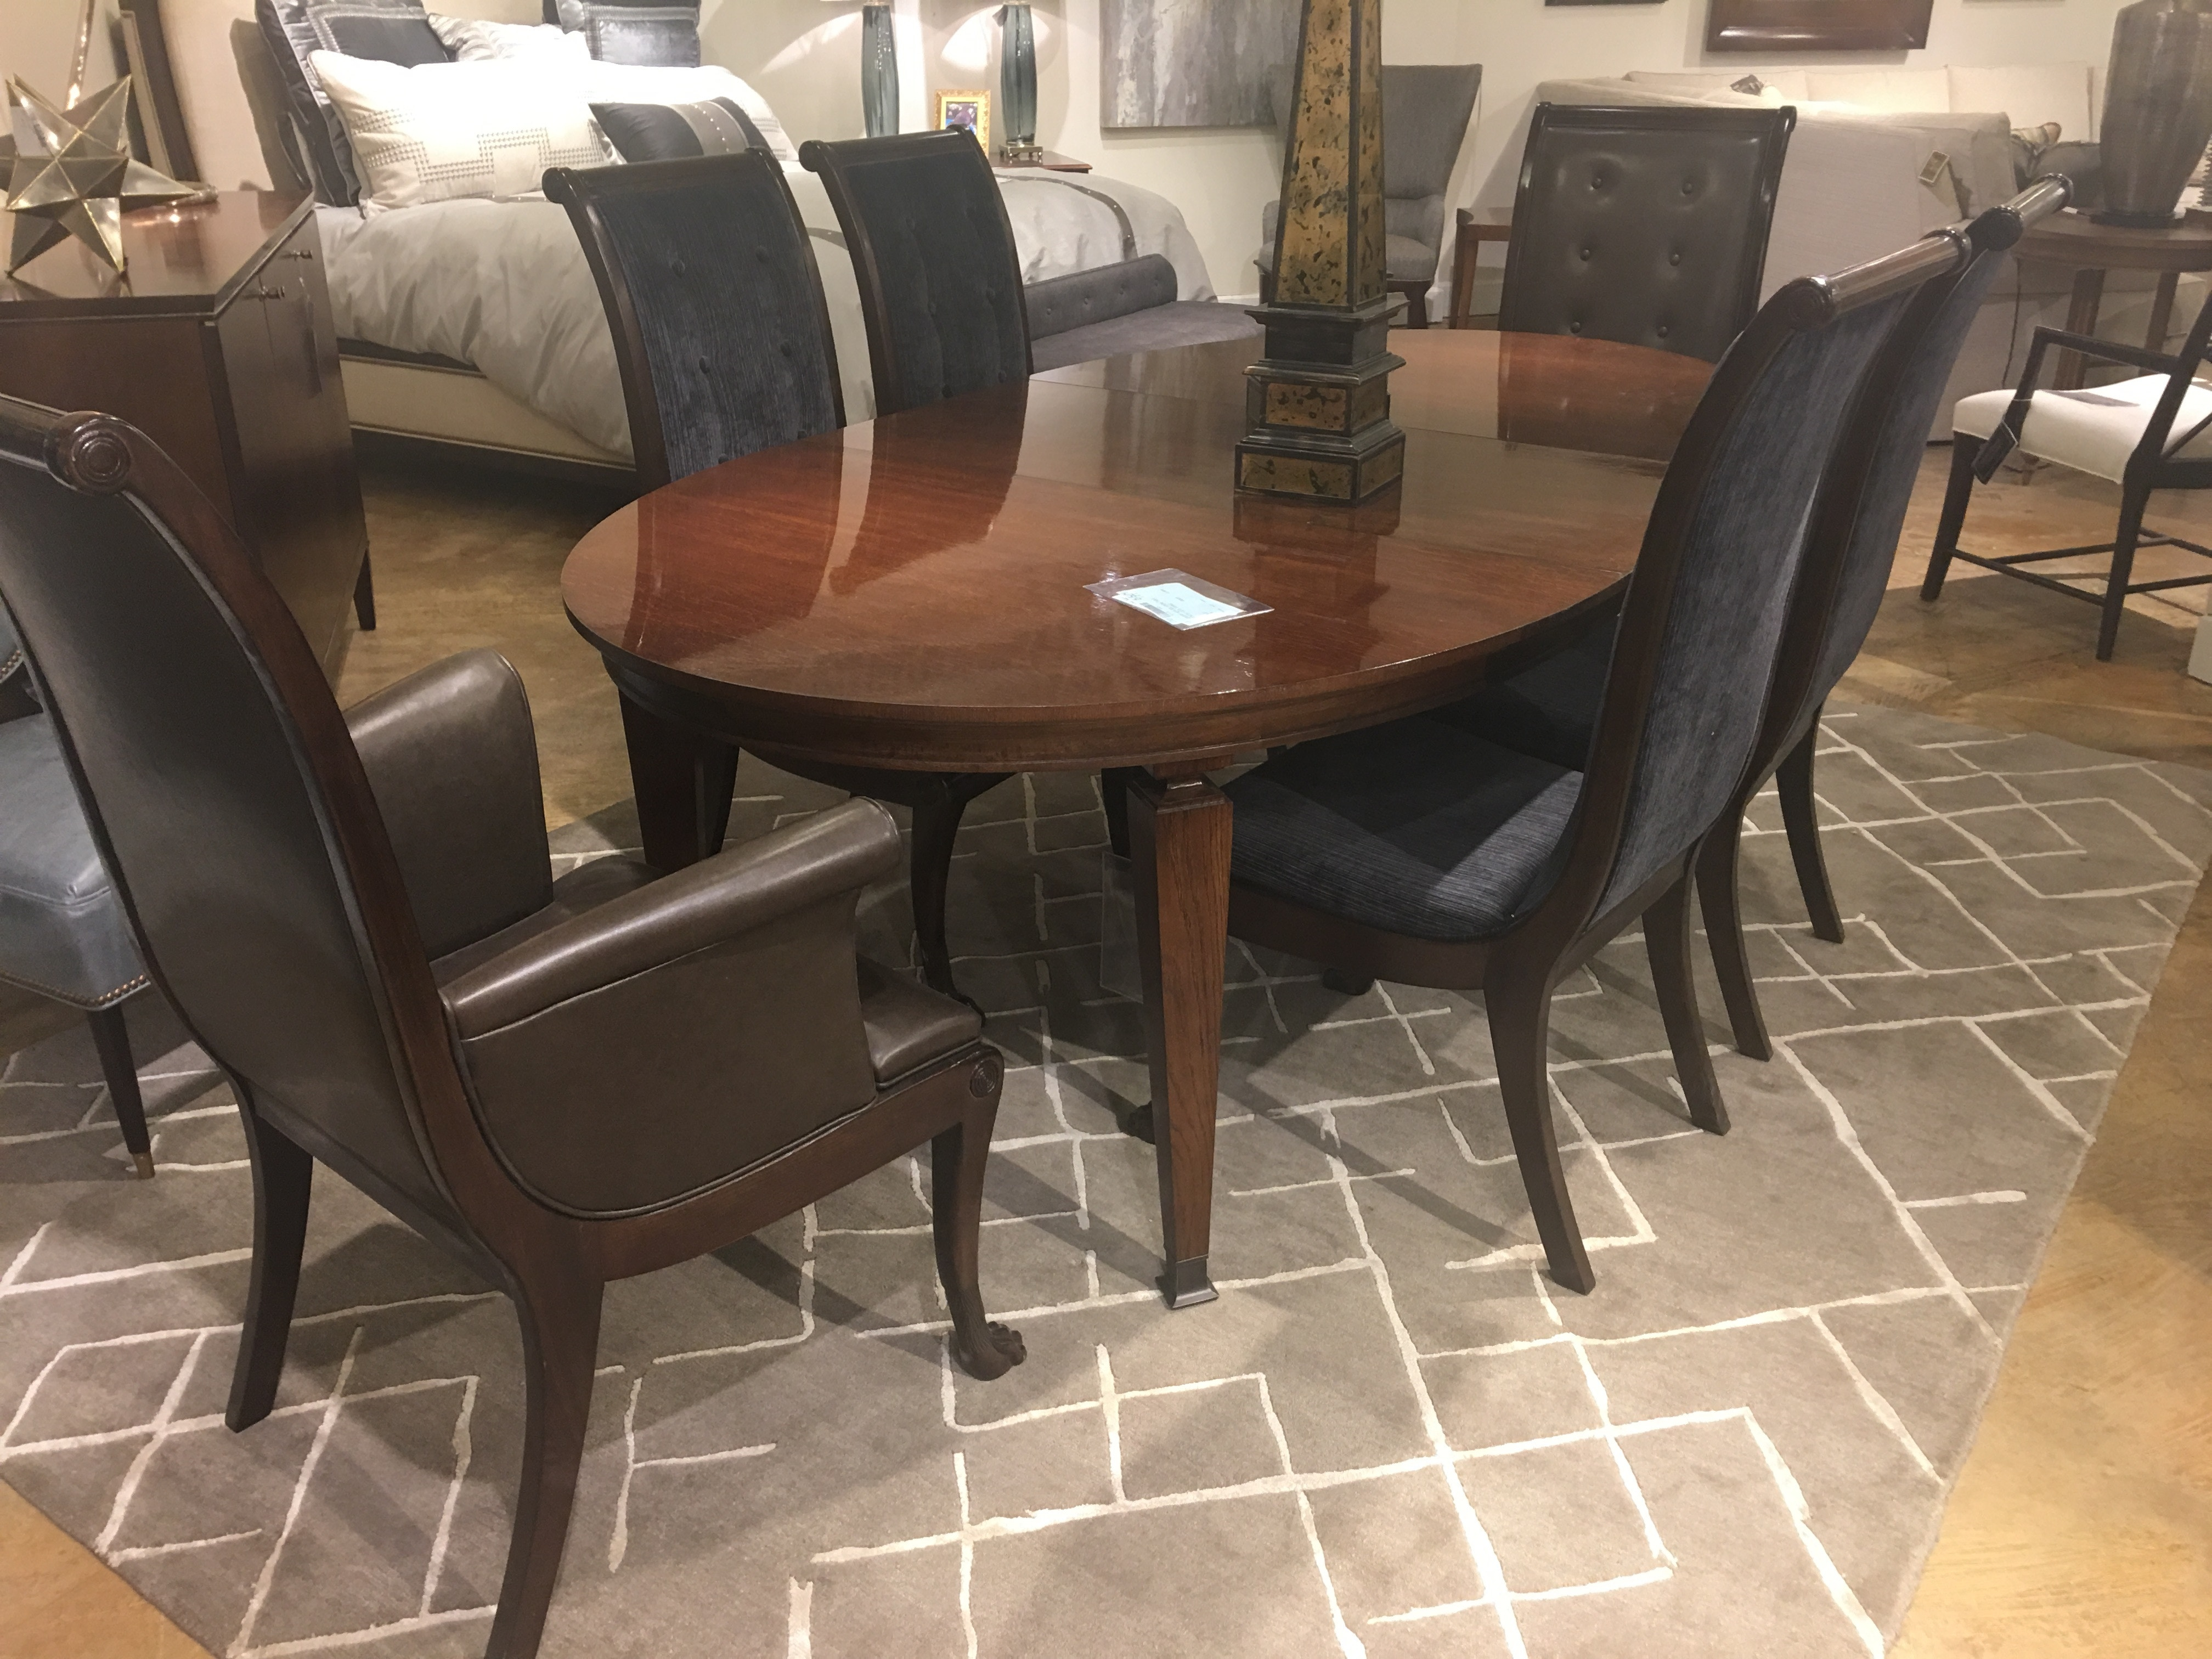 arlington round sienna pedestal dining room table w chestnut finish. ae9-301. finlay dining table arlington round sienna pedestal room w chestnut finish